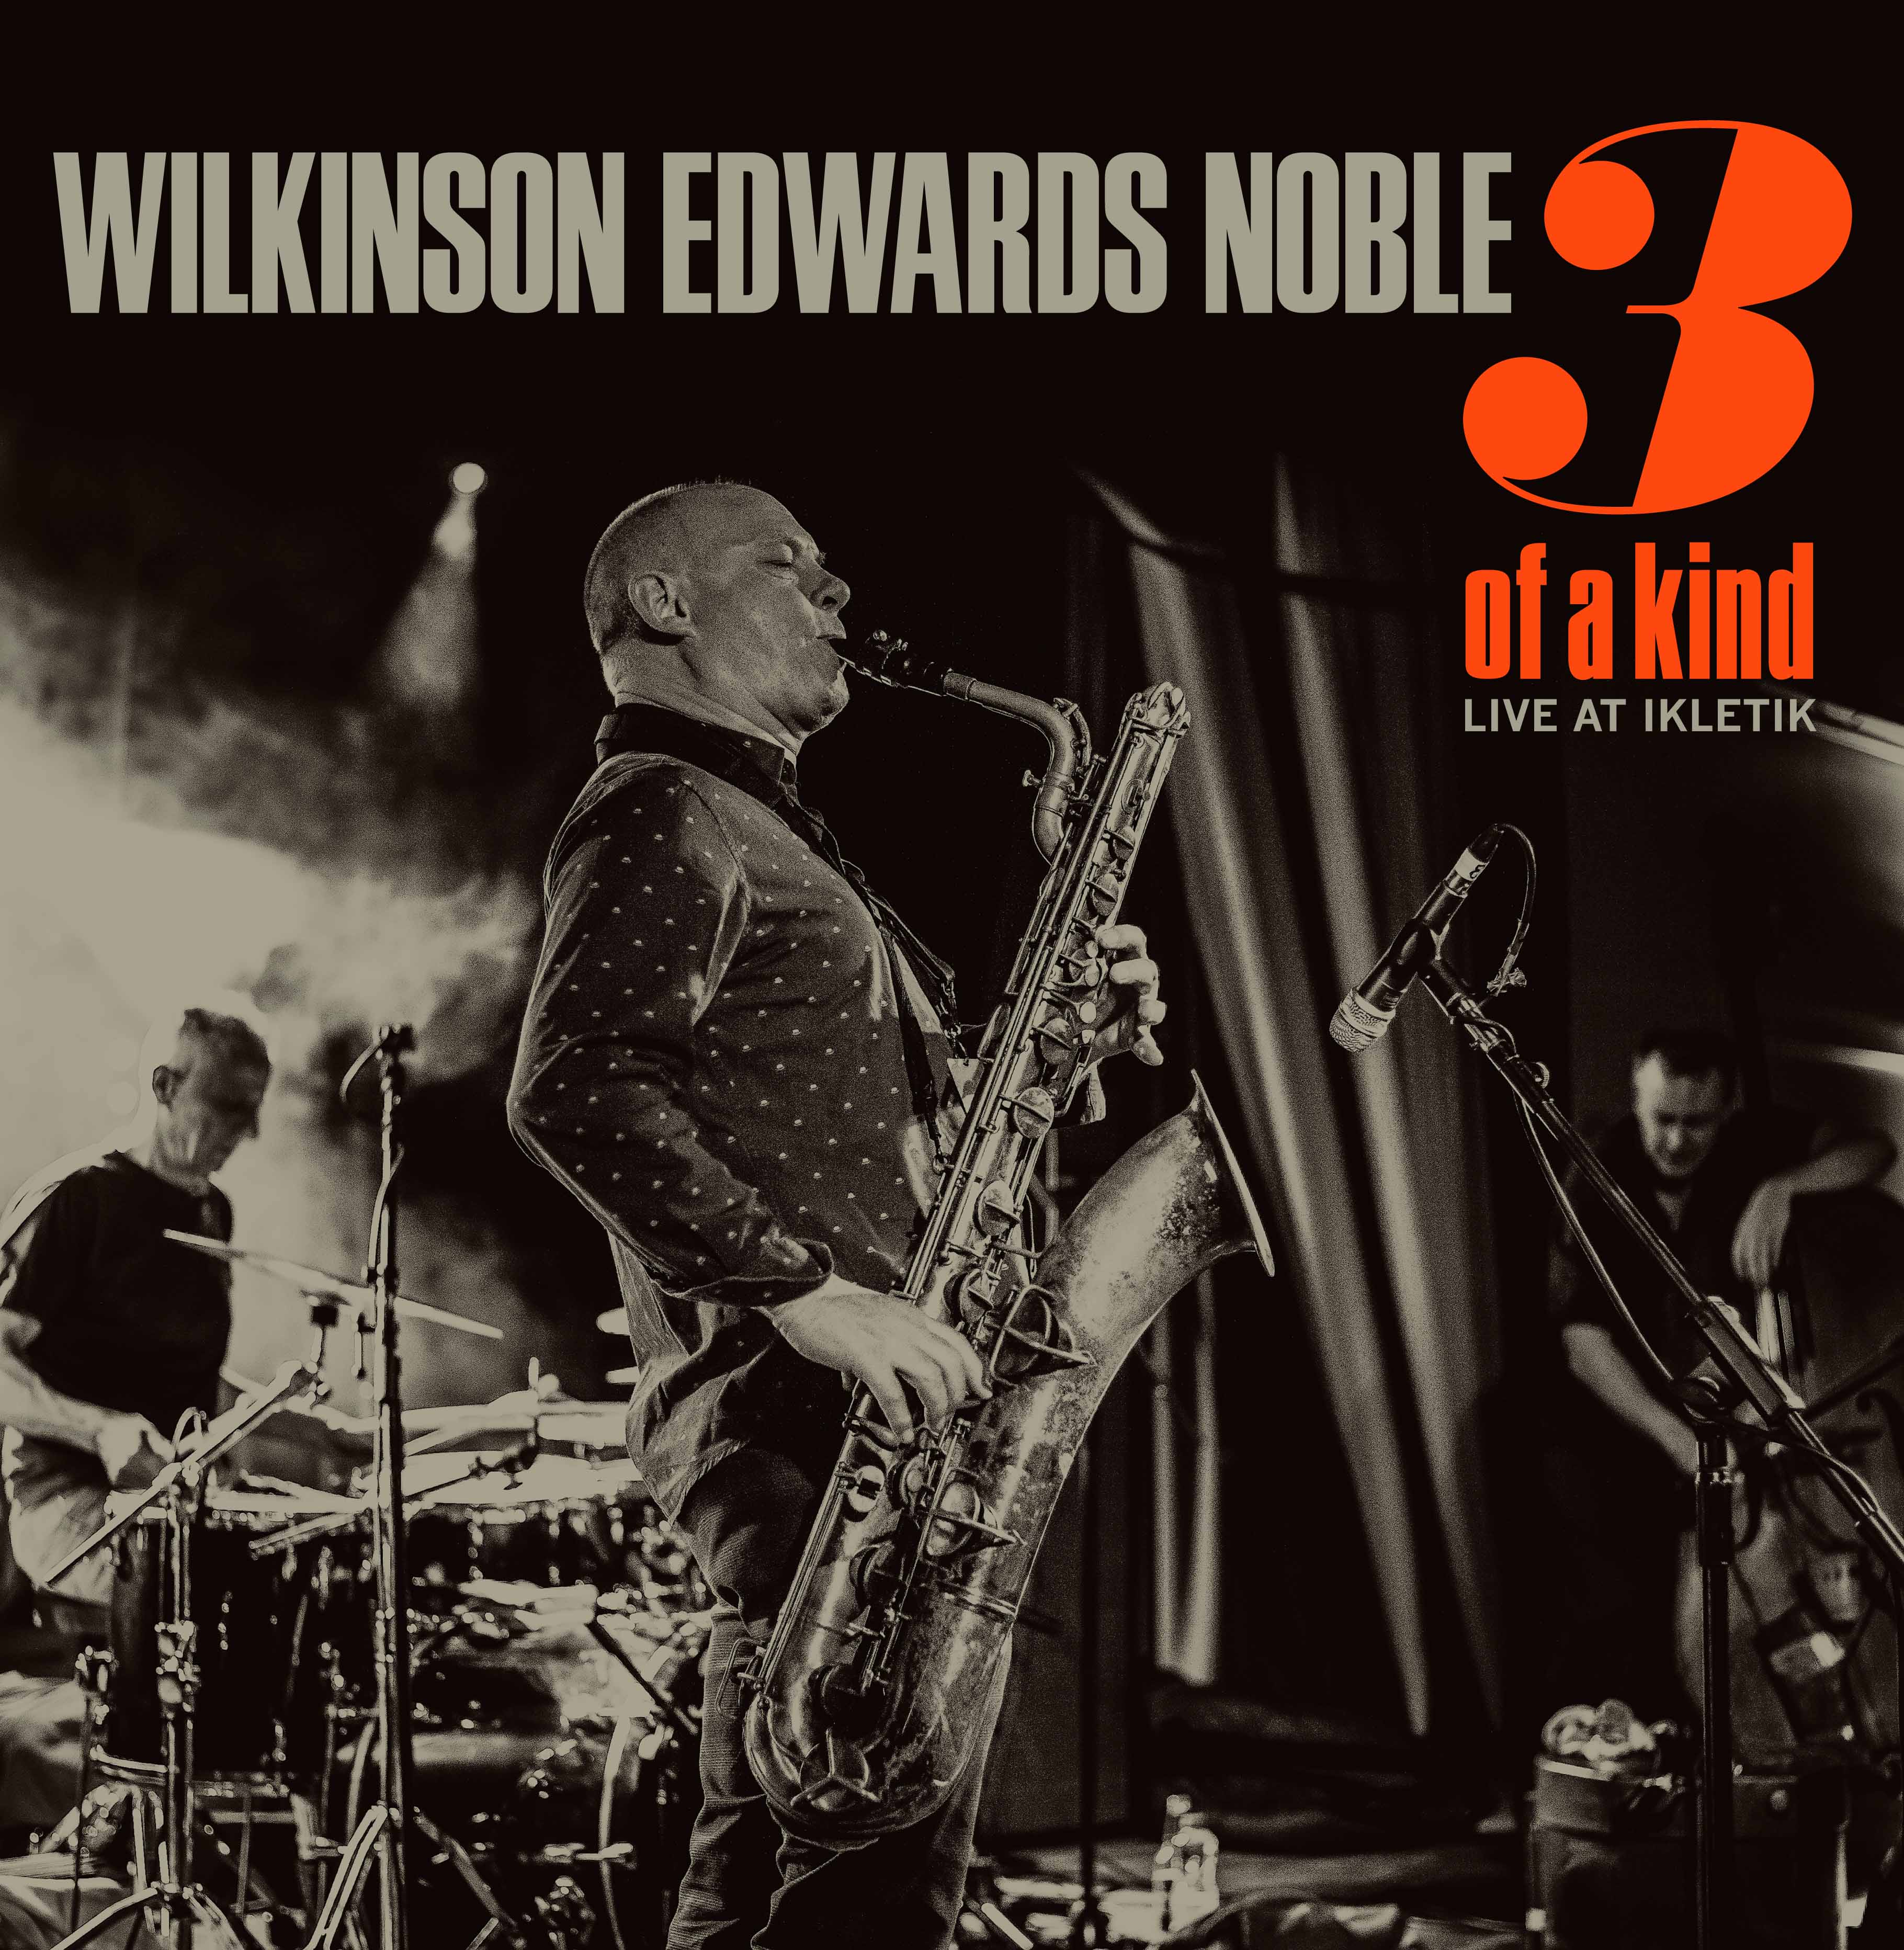 Alan Wilkinson / John Edwards / Steve Noble Trio